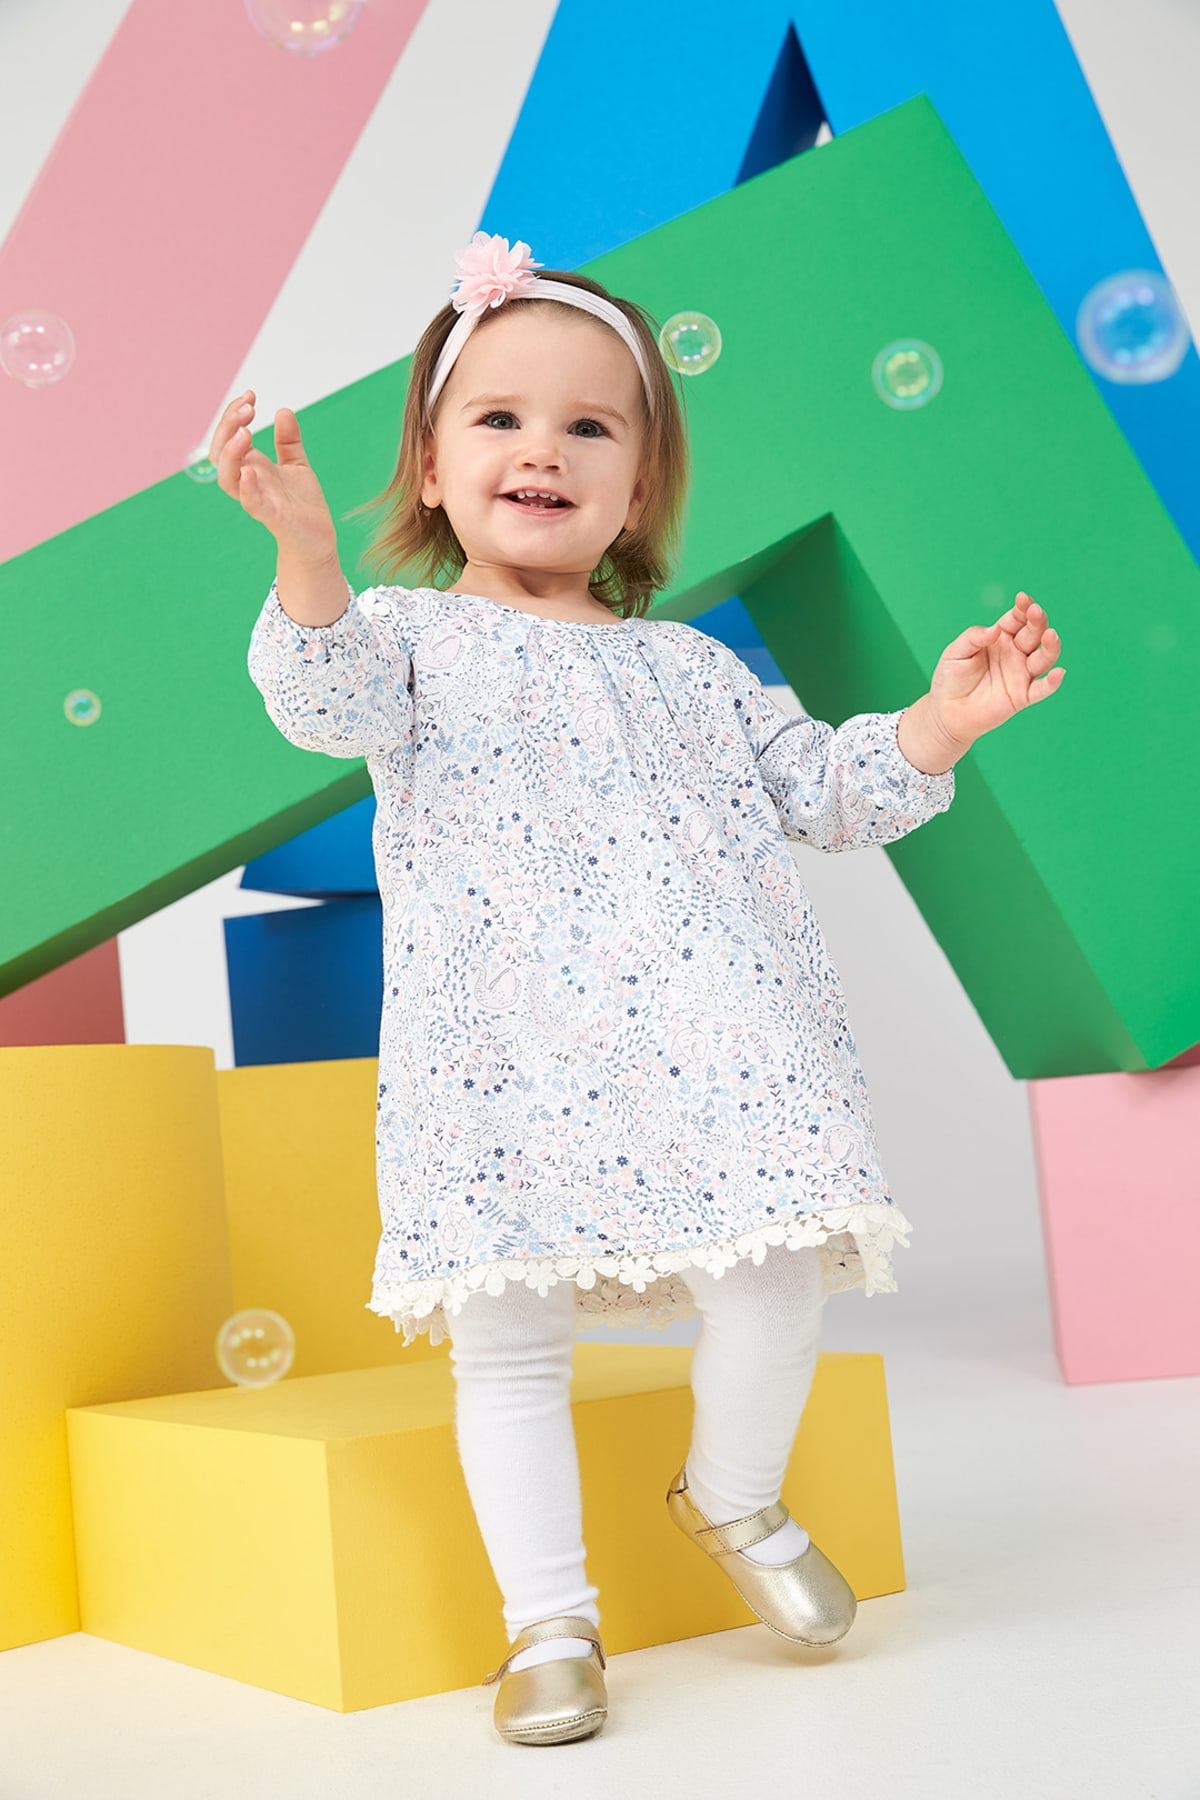 Kids' Clothes & Accessories | Children's Clothing for All